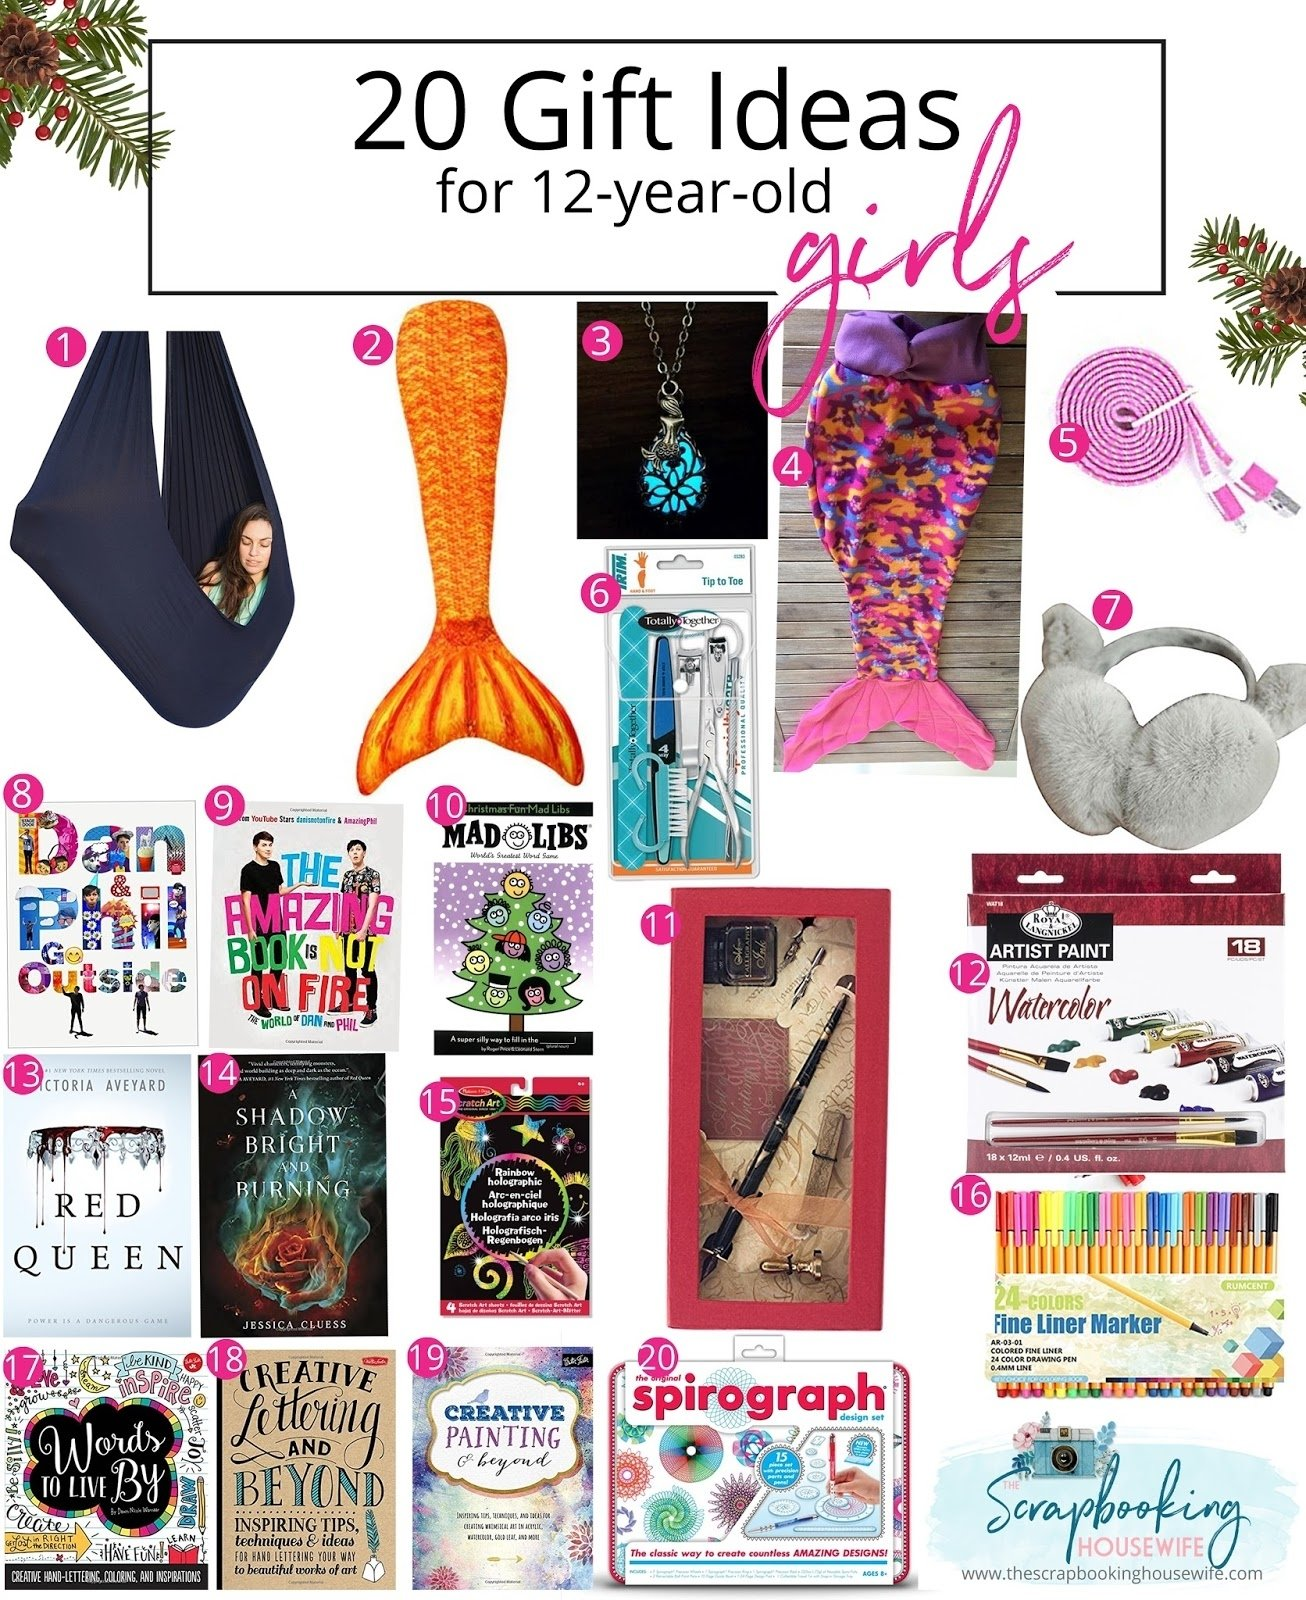 10 Unique Gift Ideas For An 11 Year Old Girl ellabella designs 20 gift ideas for 12 year old tween girls 7 2020